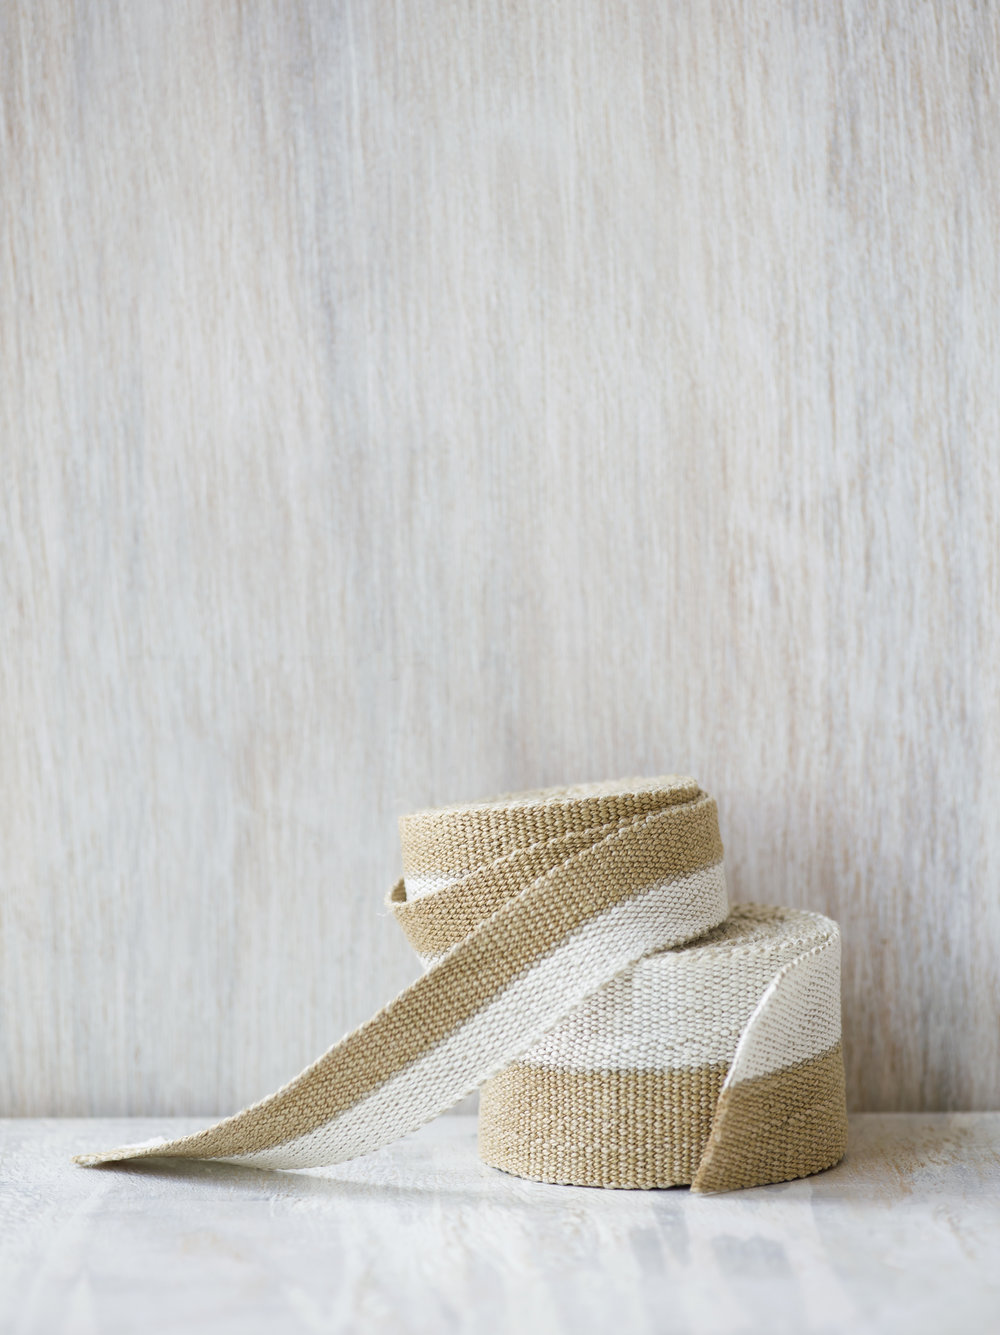 Modern Neutral III: White and Gold, medium and narrow tapes